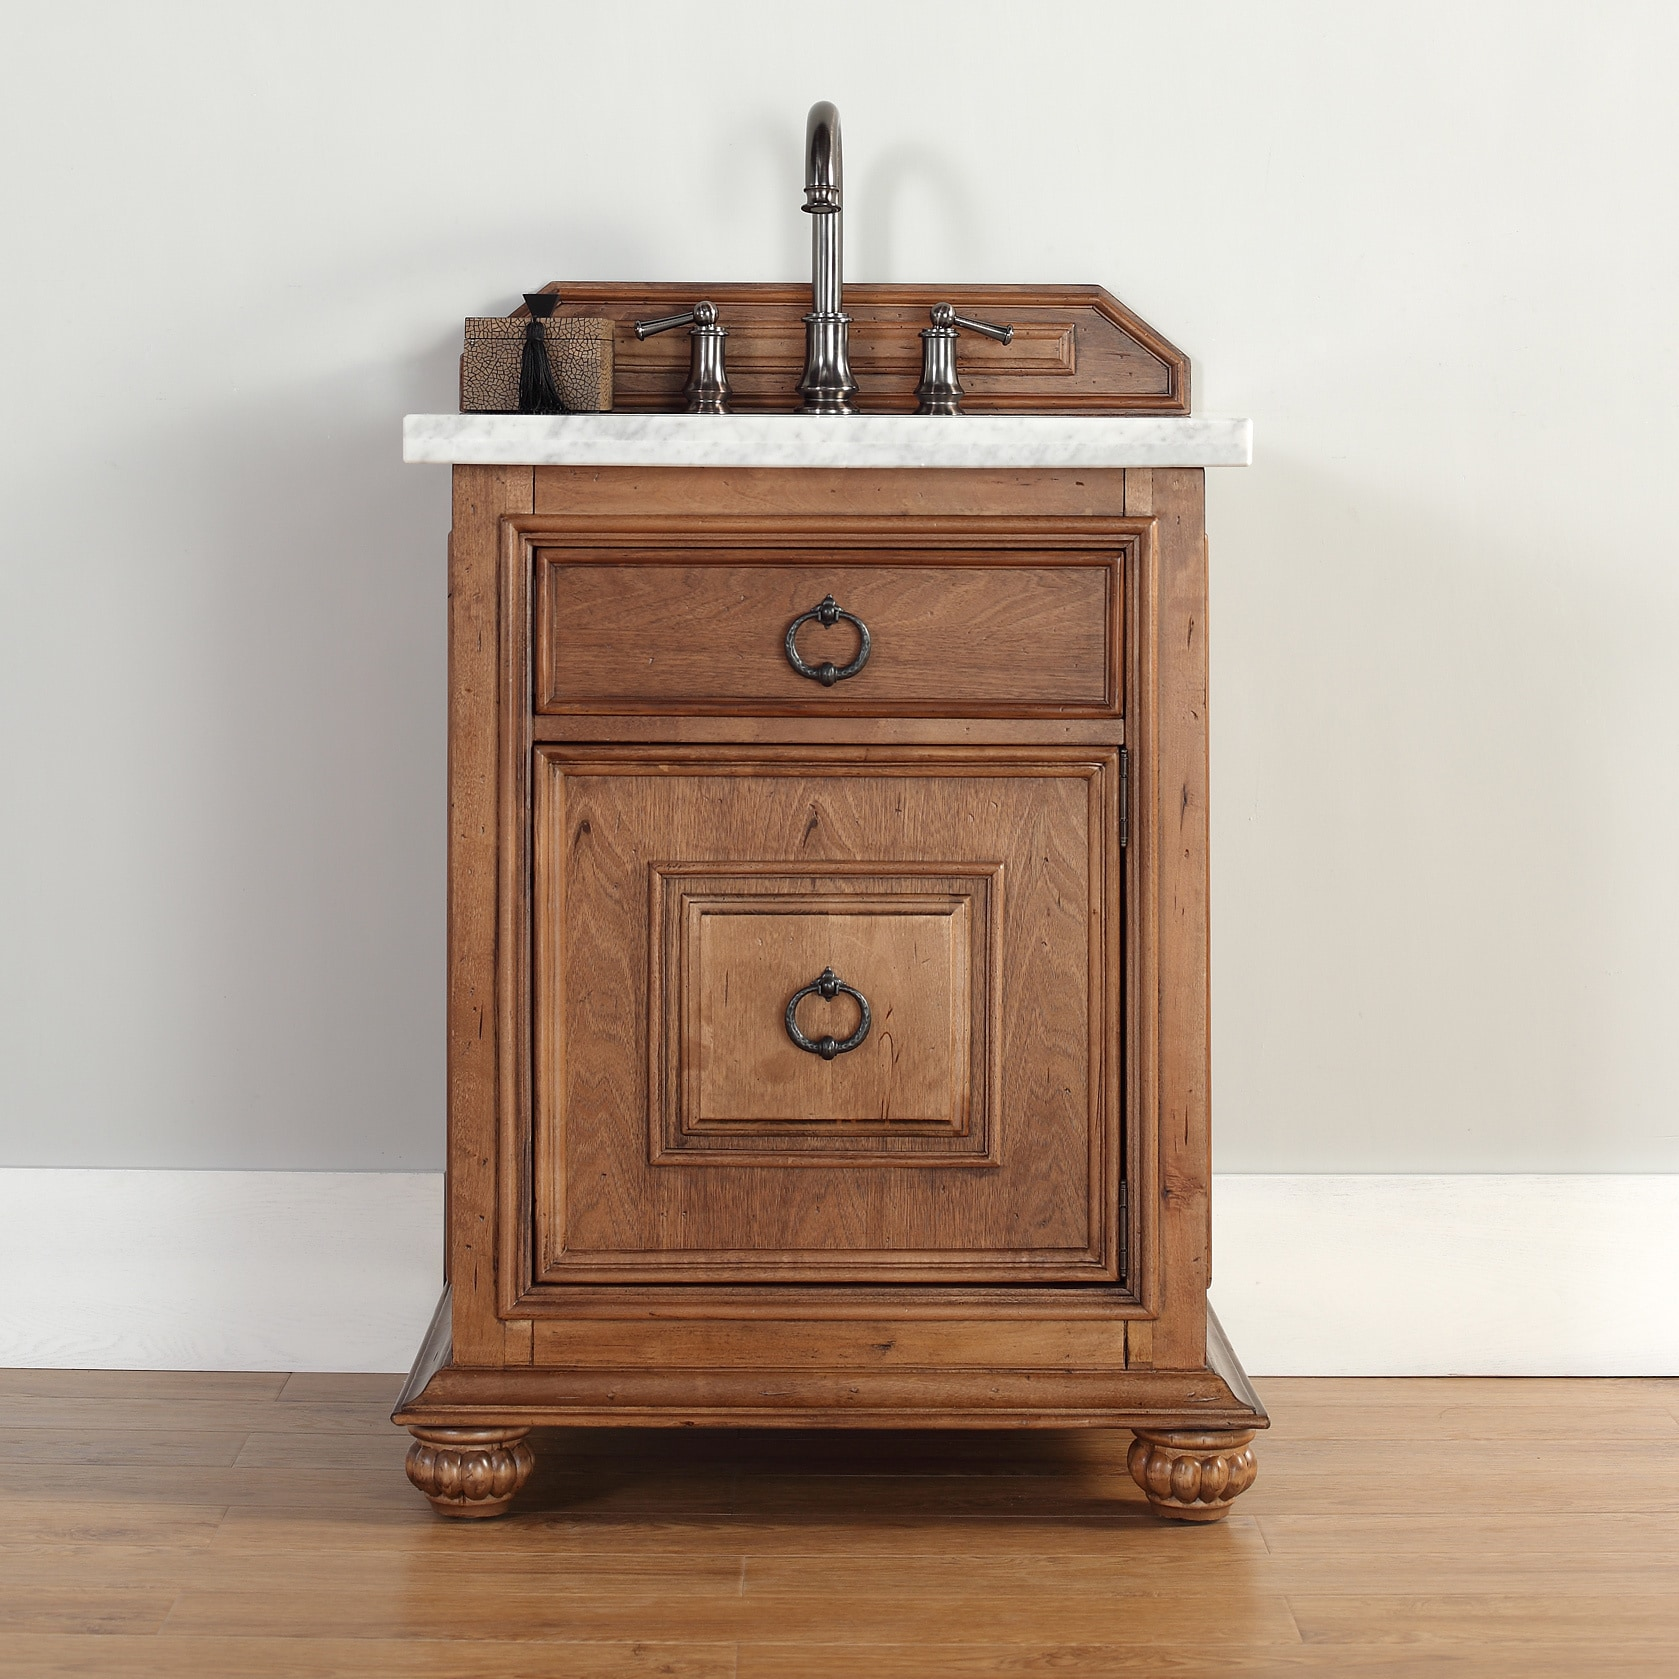 sink martin cultured vanity bathroom pd marble copper james cove with actual undermount top vanities shop driftwood common x furniture in single